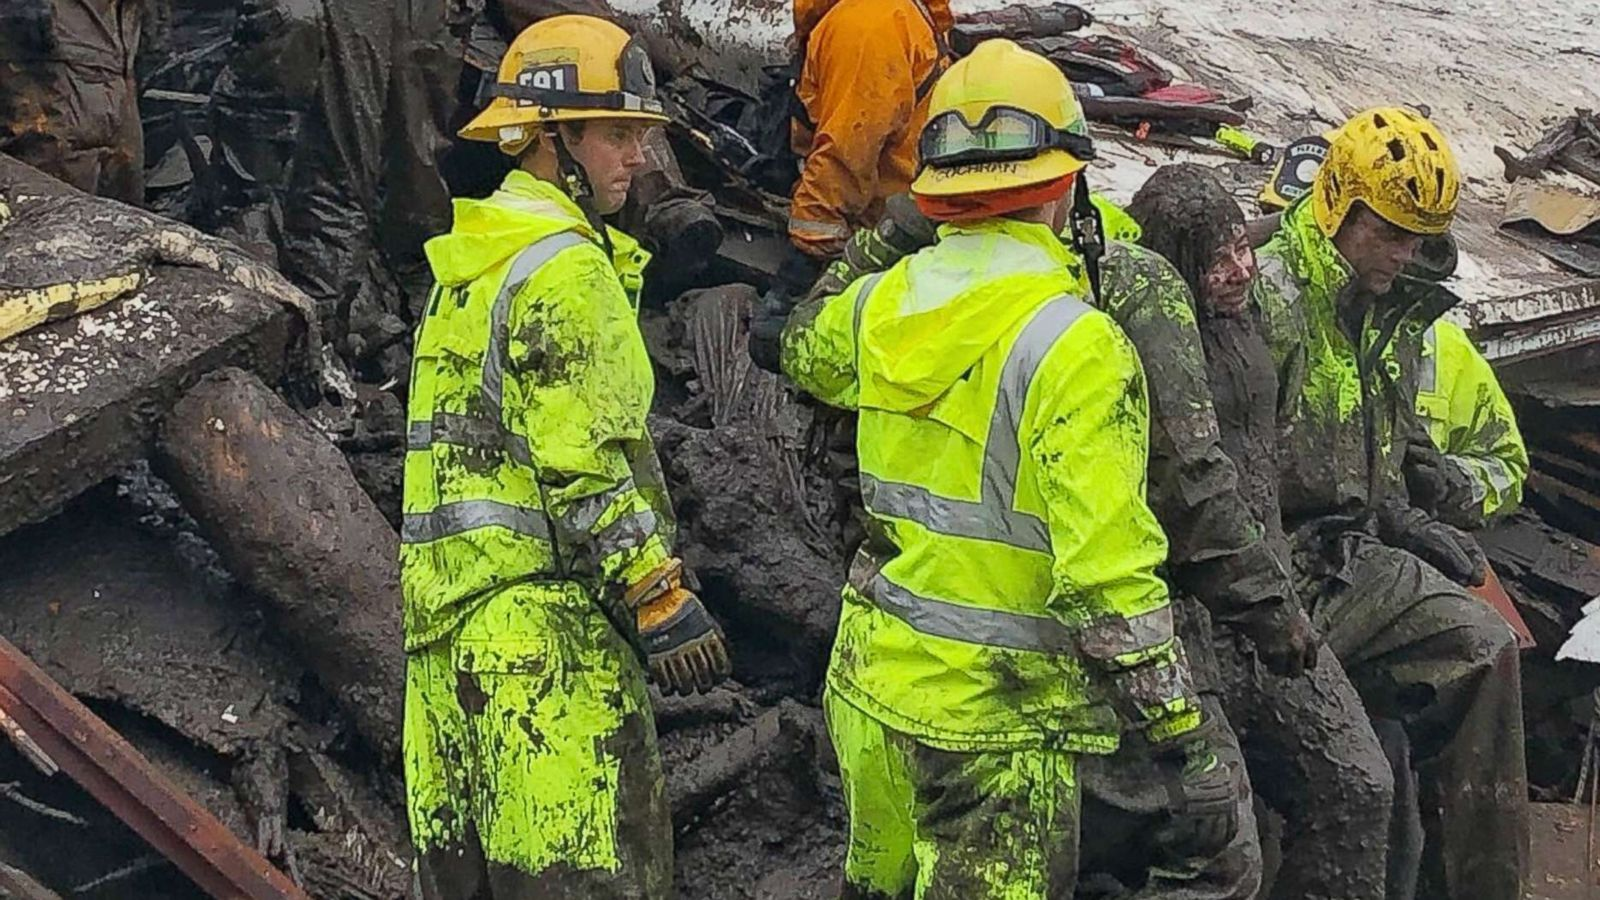 Firefighters Rescue 14 Year Old Girl From California Home Destroyed By Mudslides Abc News